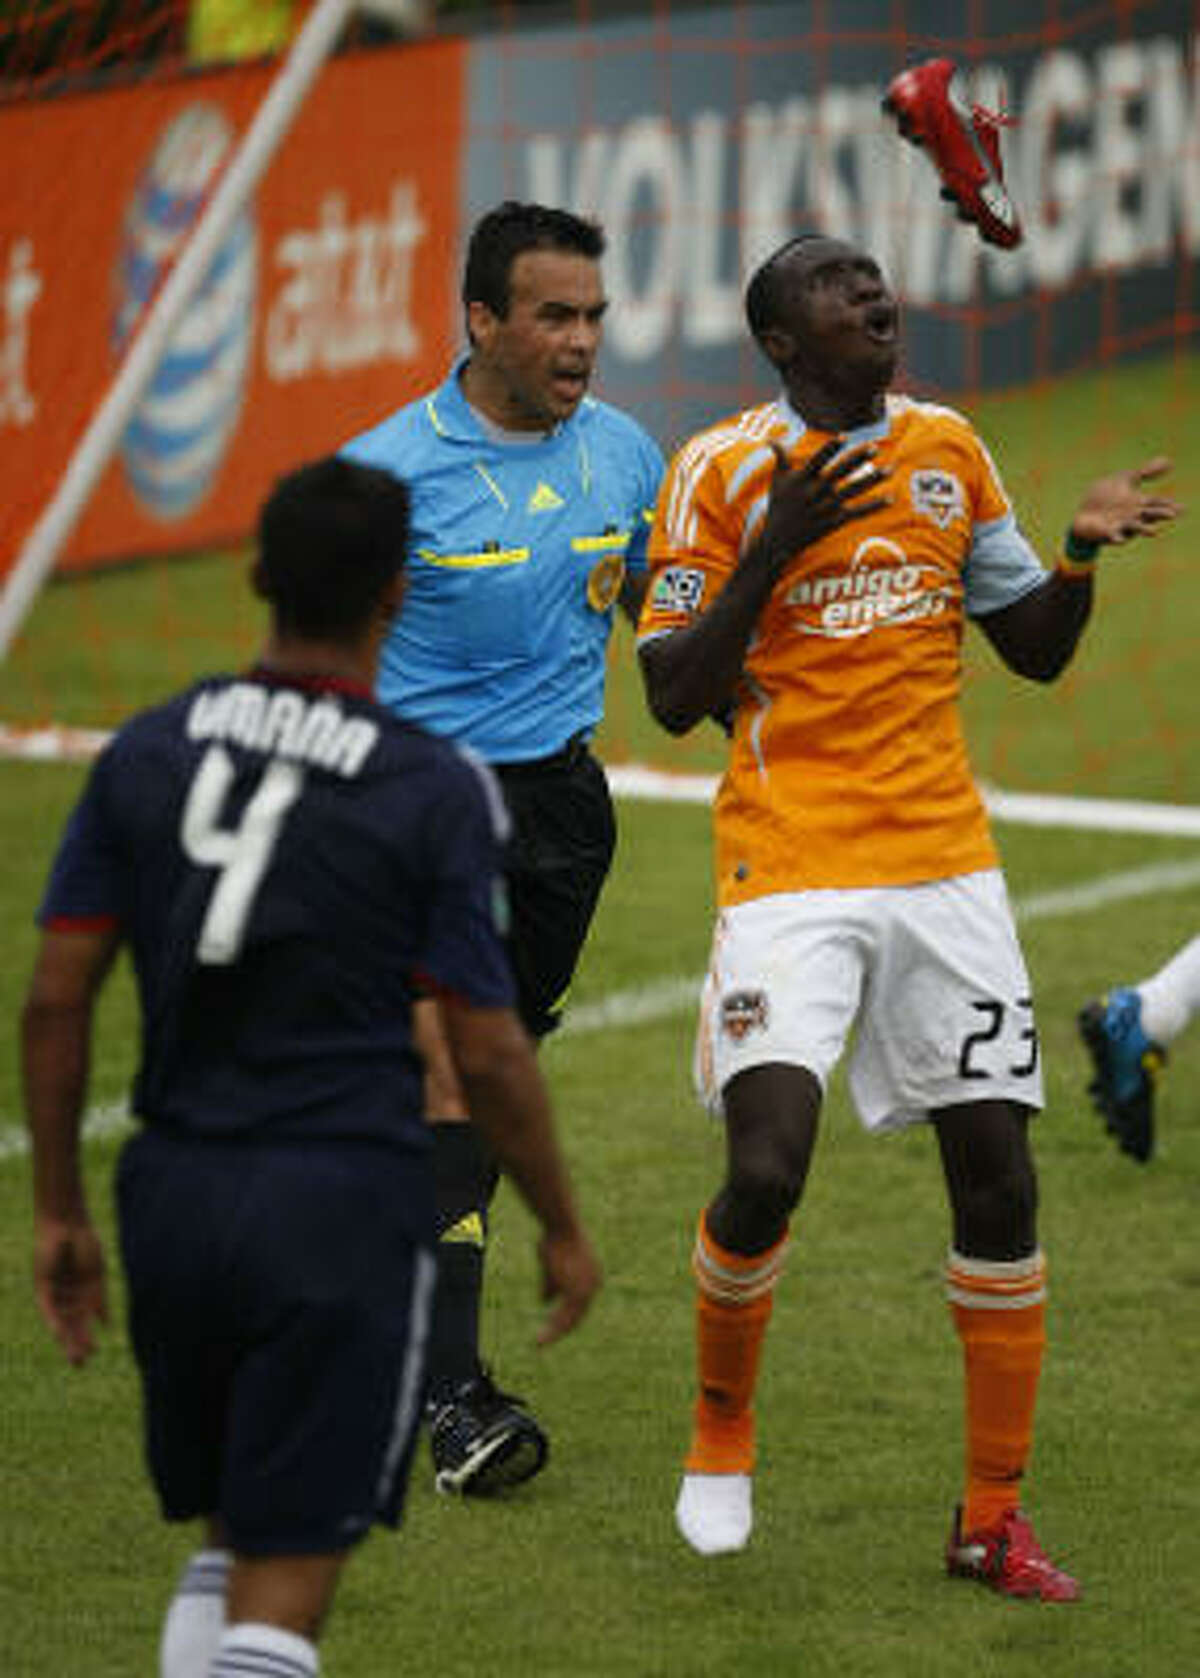 Dynamo forward Dominic Oduro celebrates his goal by juggling his shoe after scoring the final goal.